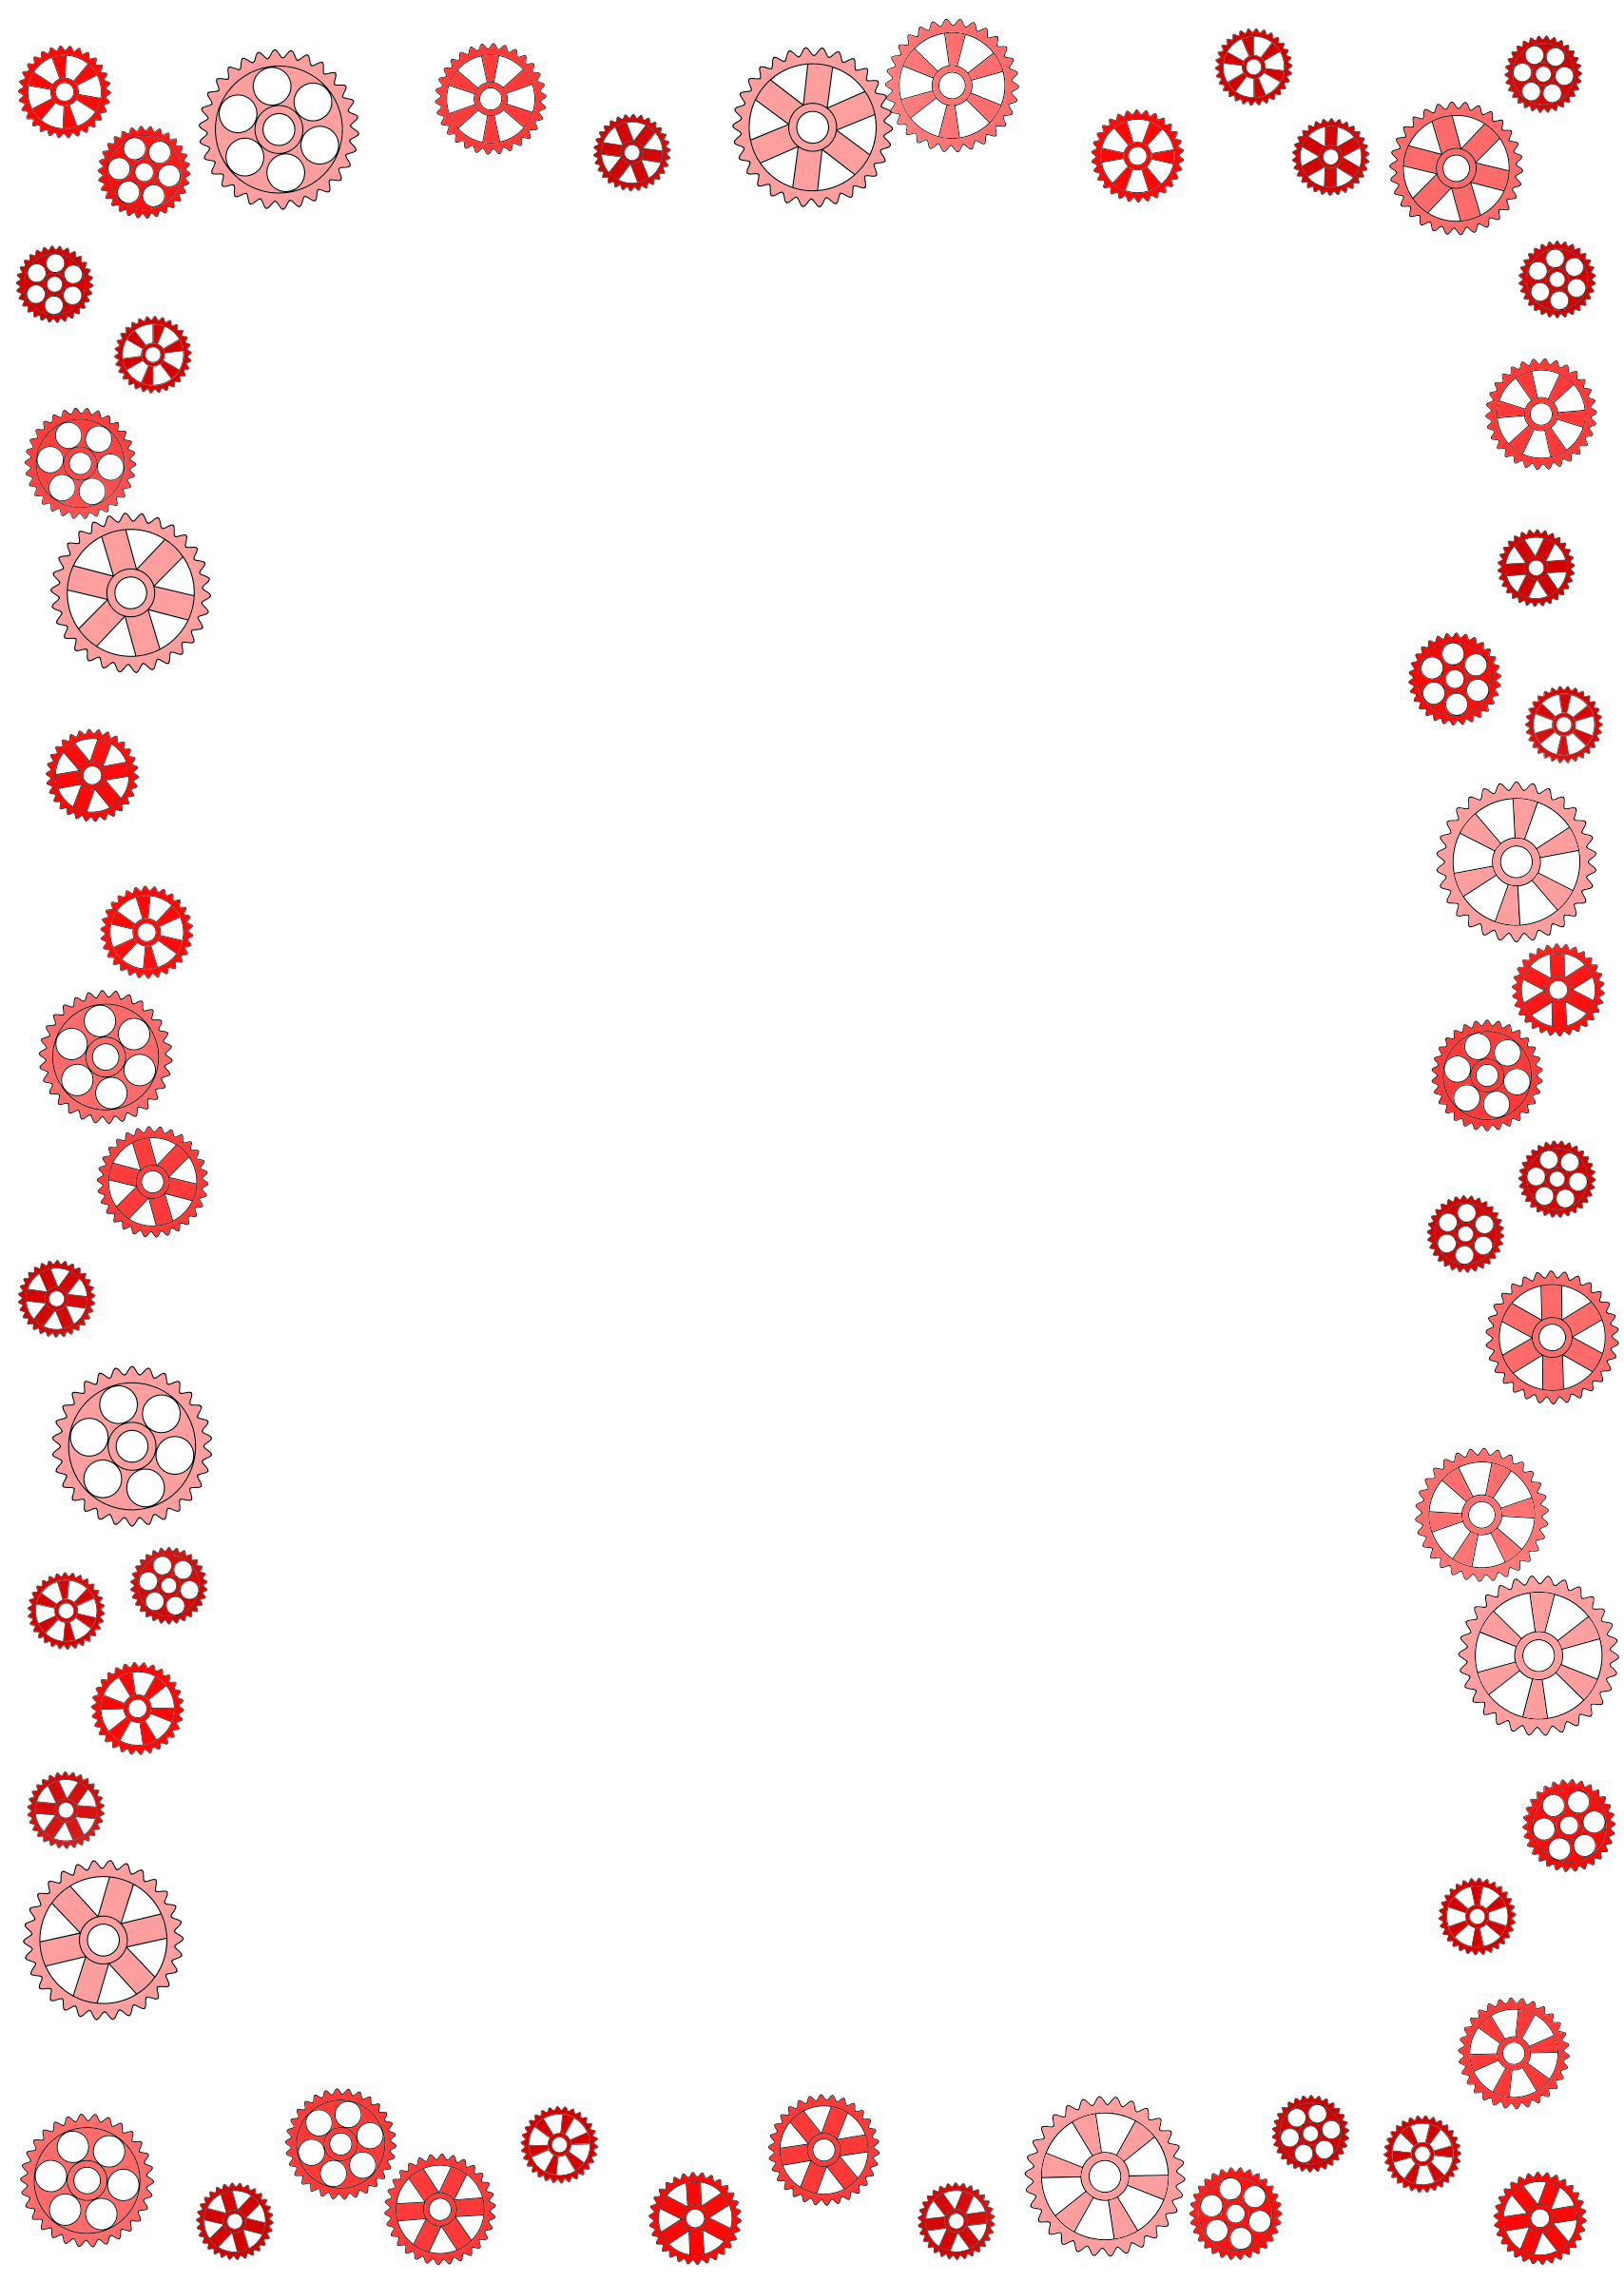 graphic Frame colour big image. Gears border clipart